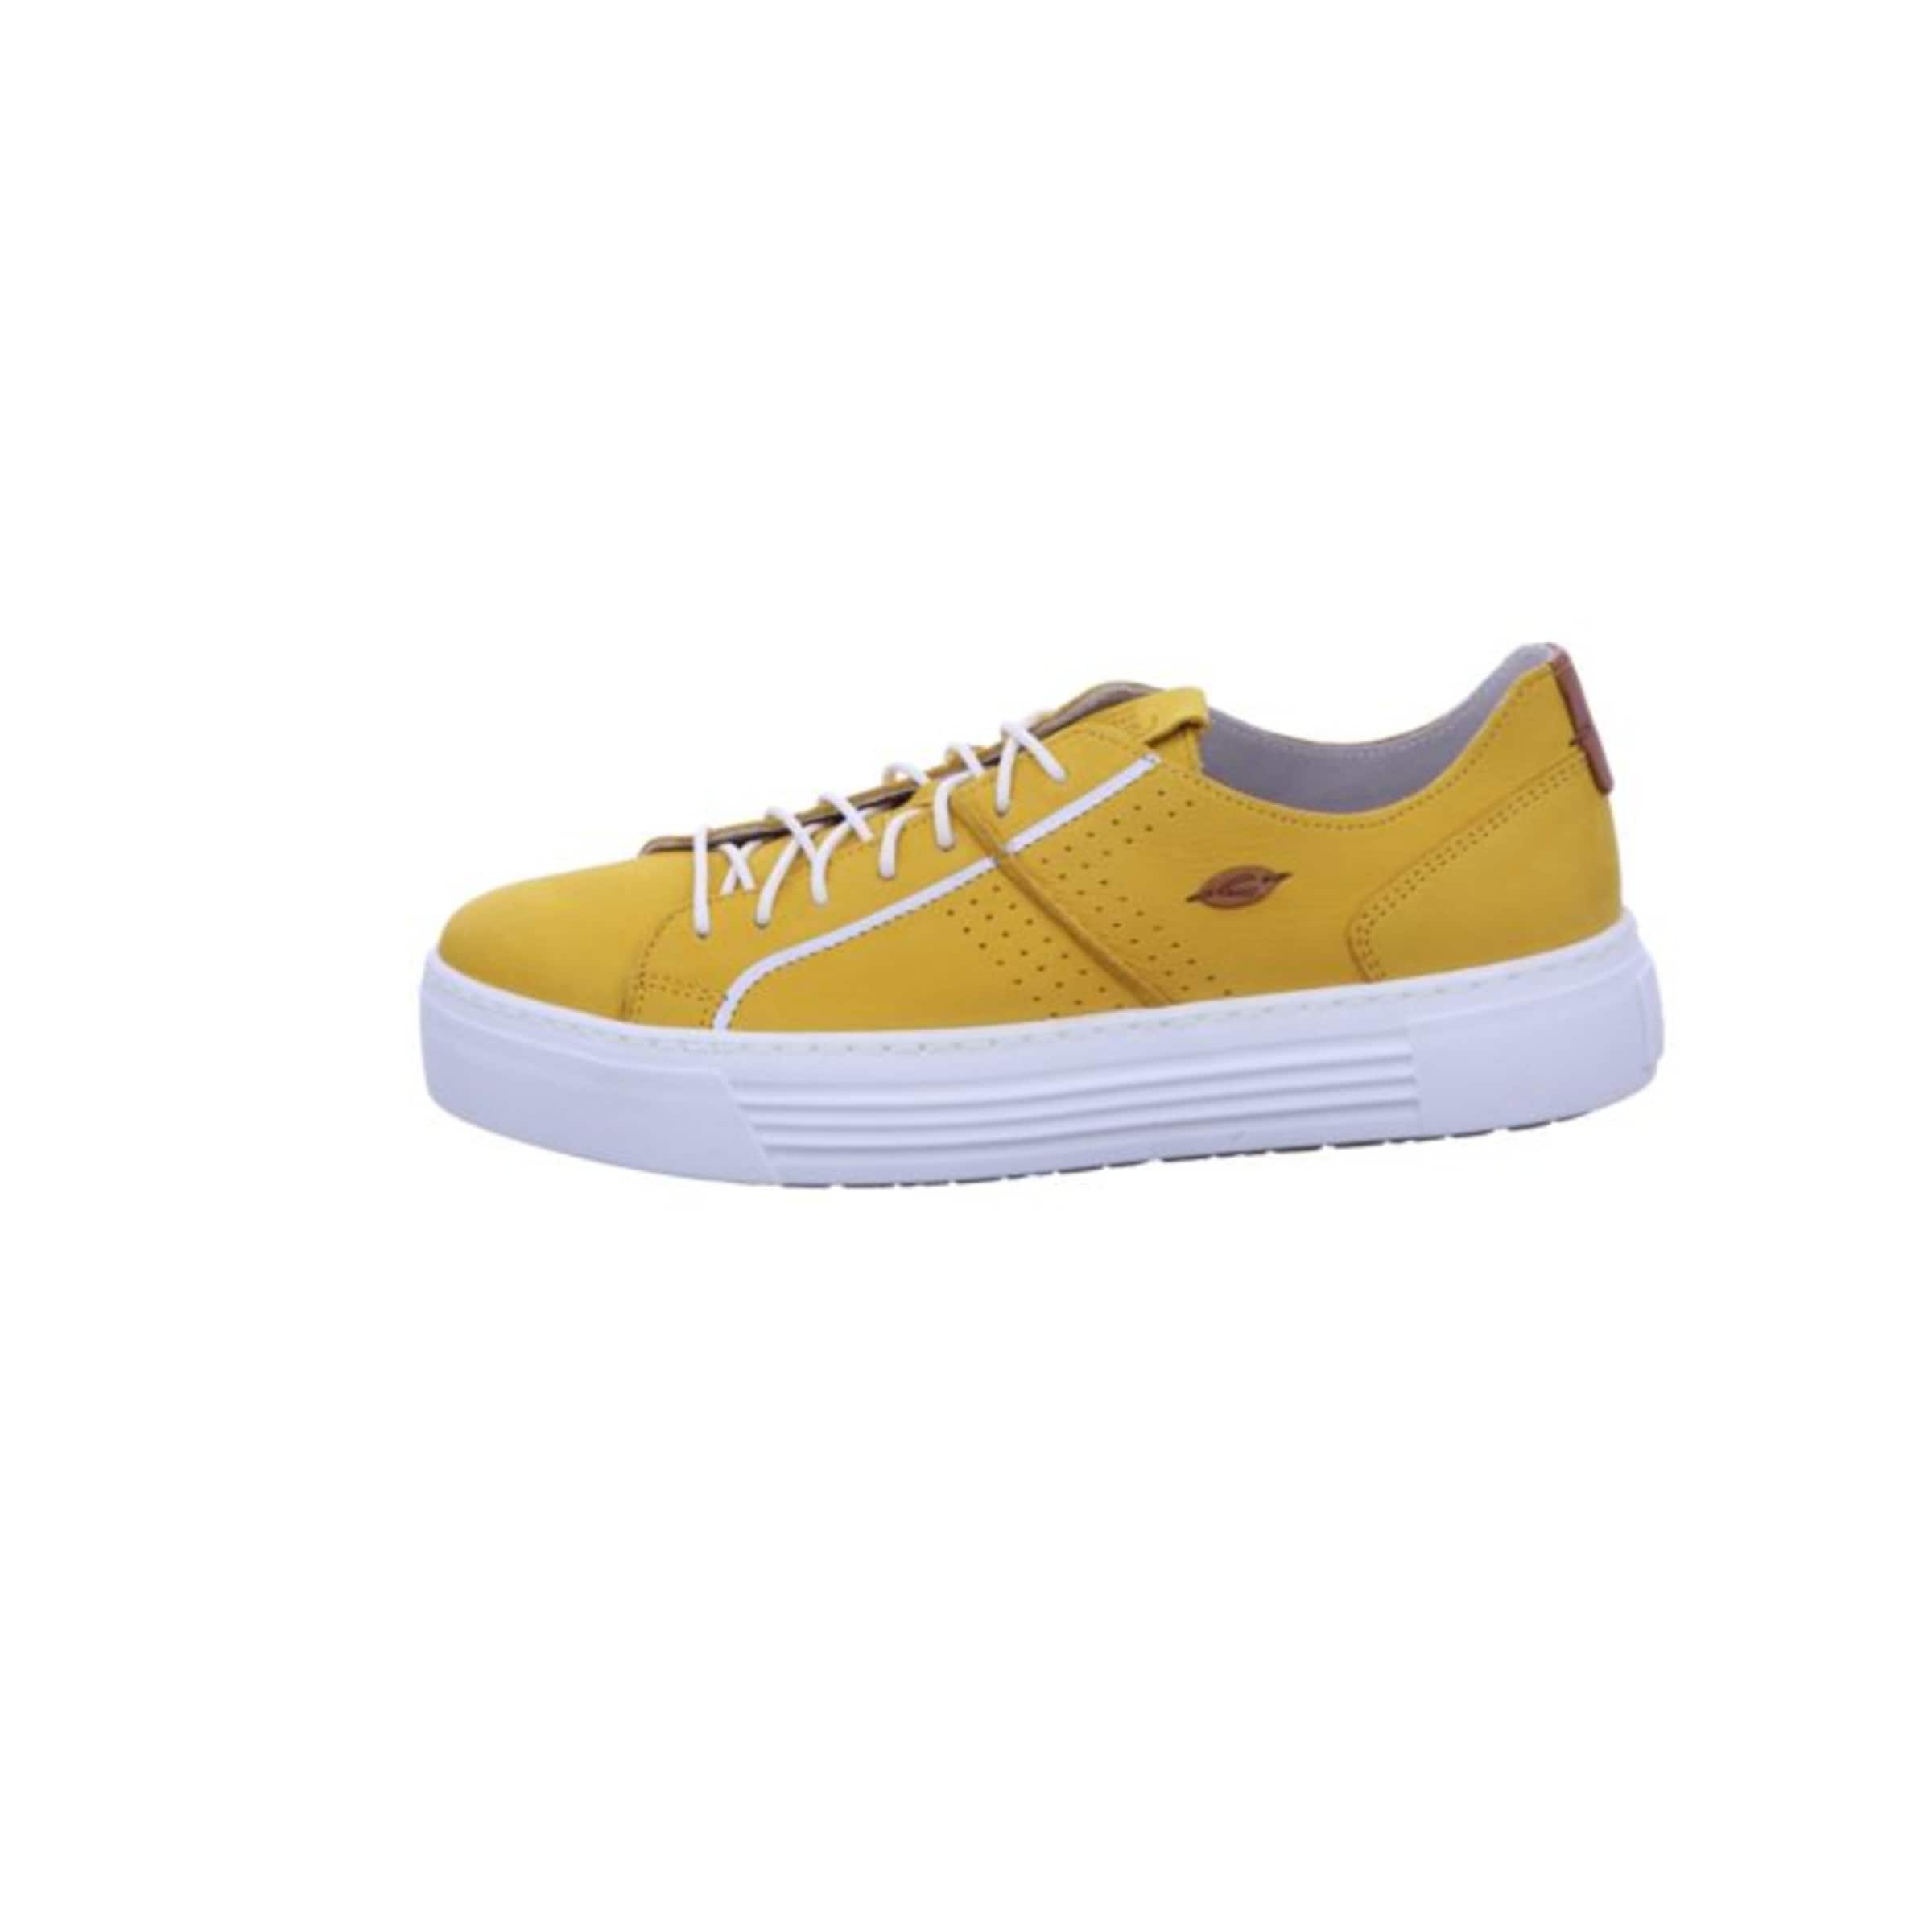 CAMEL ACTIVE Sneakers in gelb